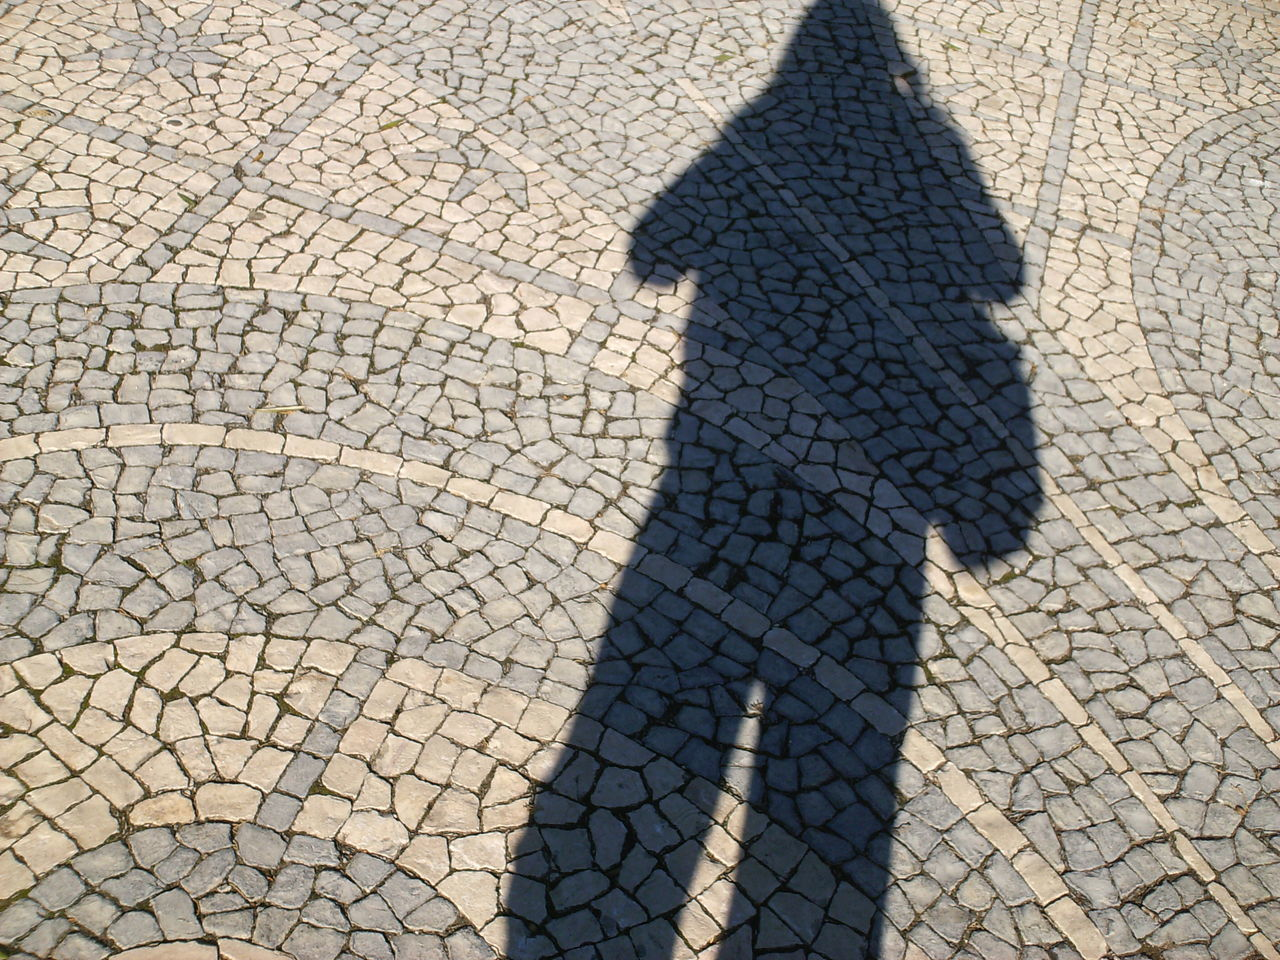 Beautiful Shadow Calçada Portuguesa Cobblestone Day Detail From Lisbon Focus On Shadow High Angle View Lights And Shadows Lisbon Lisbon - Portugal Mammal Nature Outdoors Portuguese Streetphotography Real People Several Shades Of Gray Shadow Shadow Of A Woman Shadow On The Ground Shadows And Lights Street Photography Sunlight Sunny Day And A Shadow Textured  Woman Walking